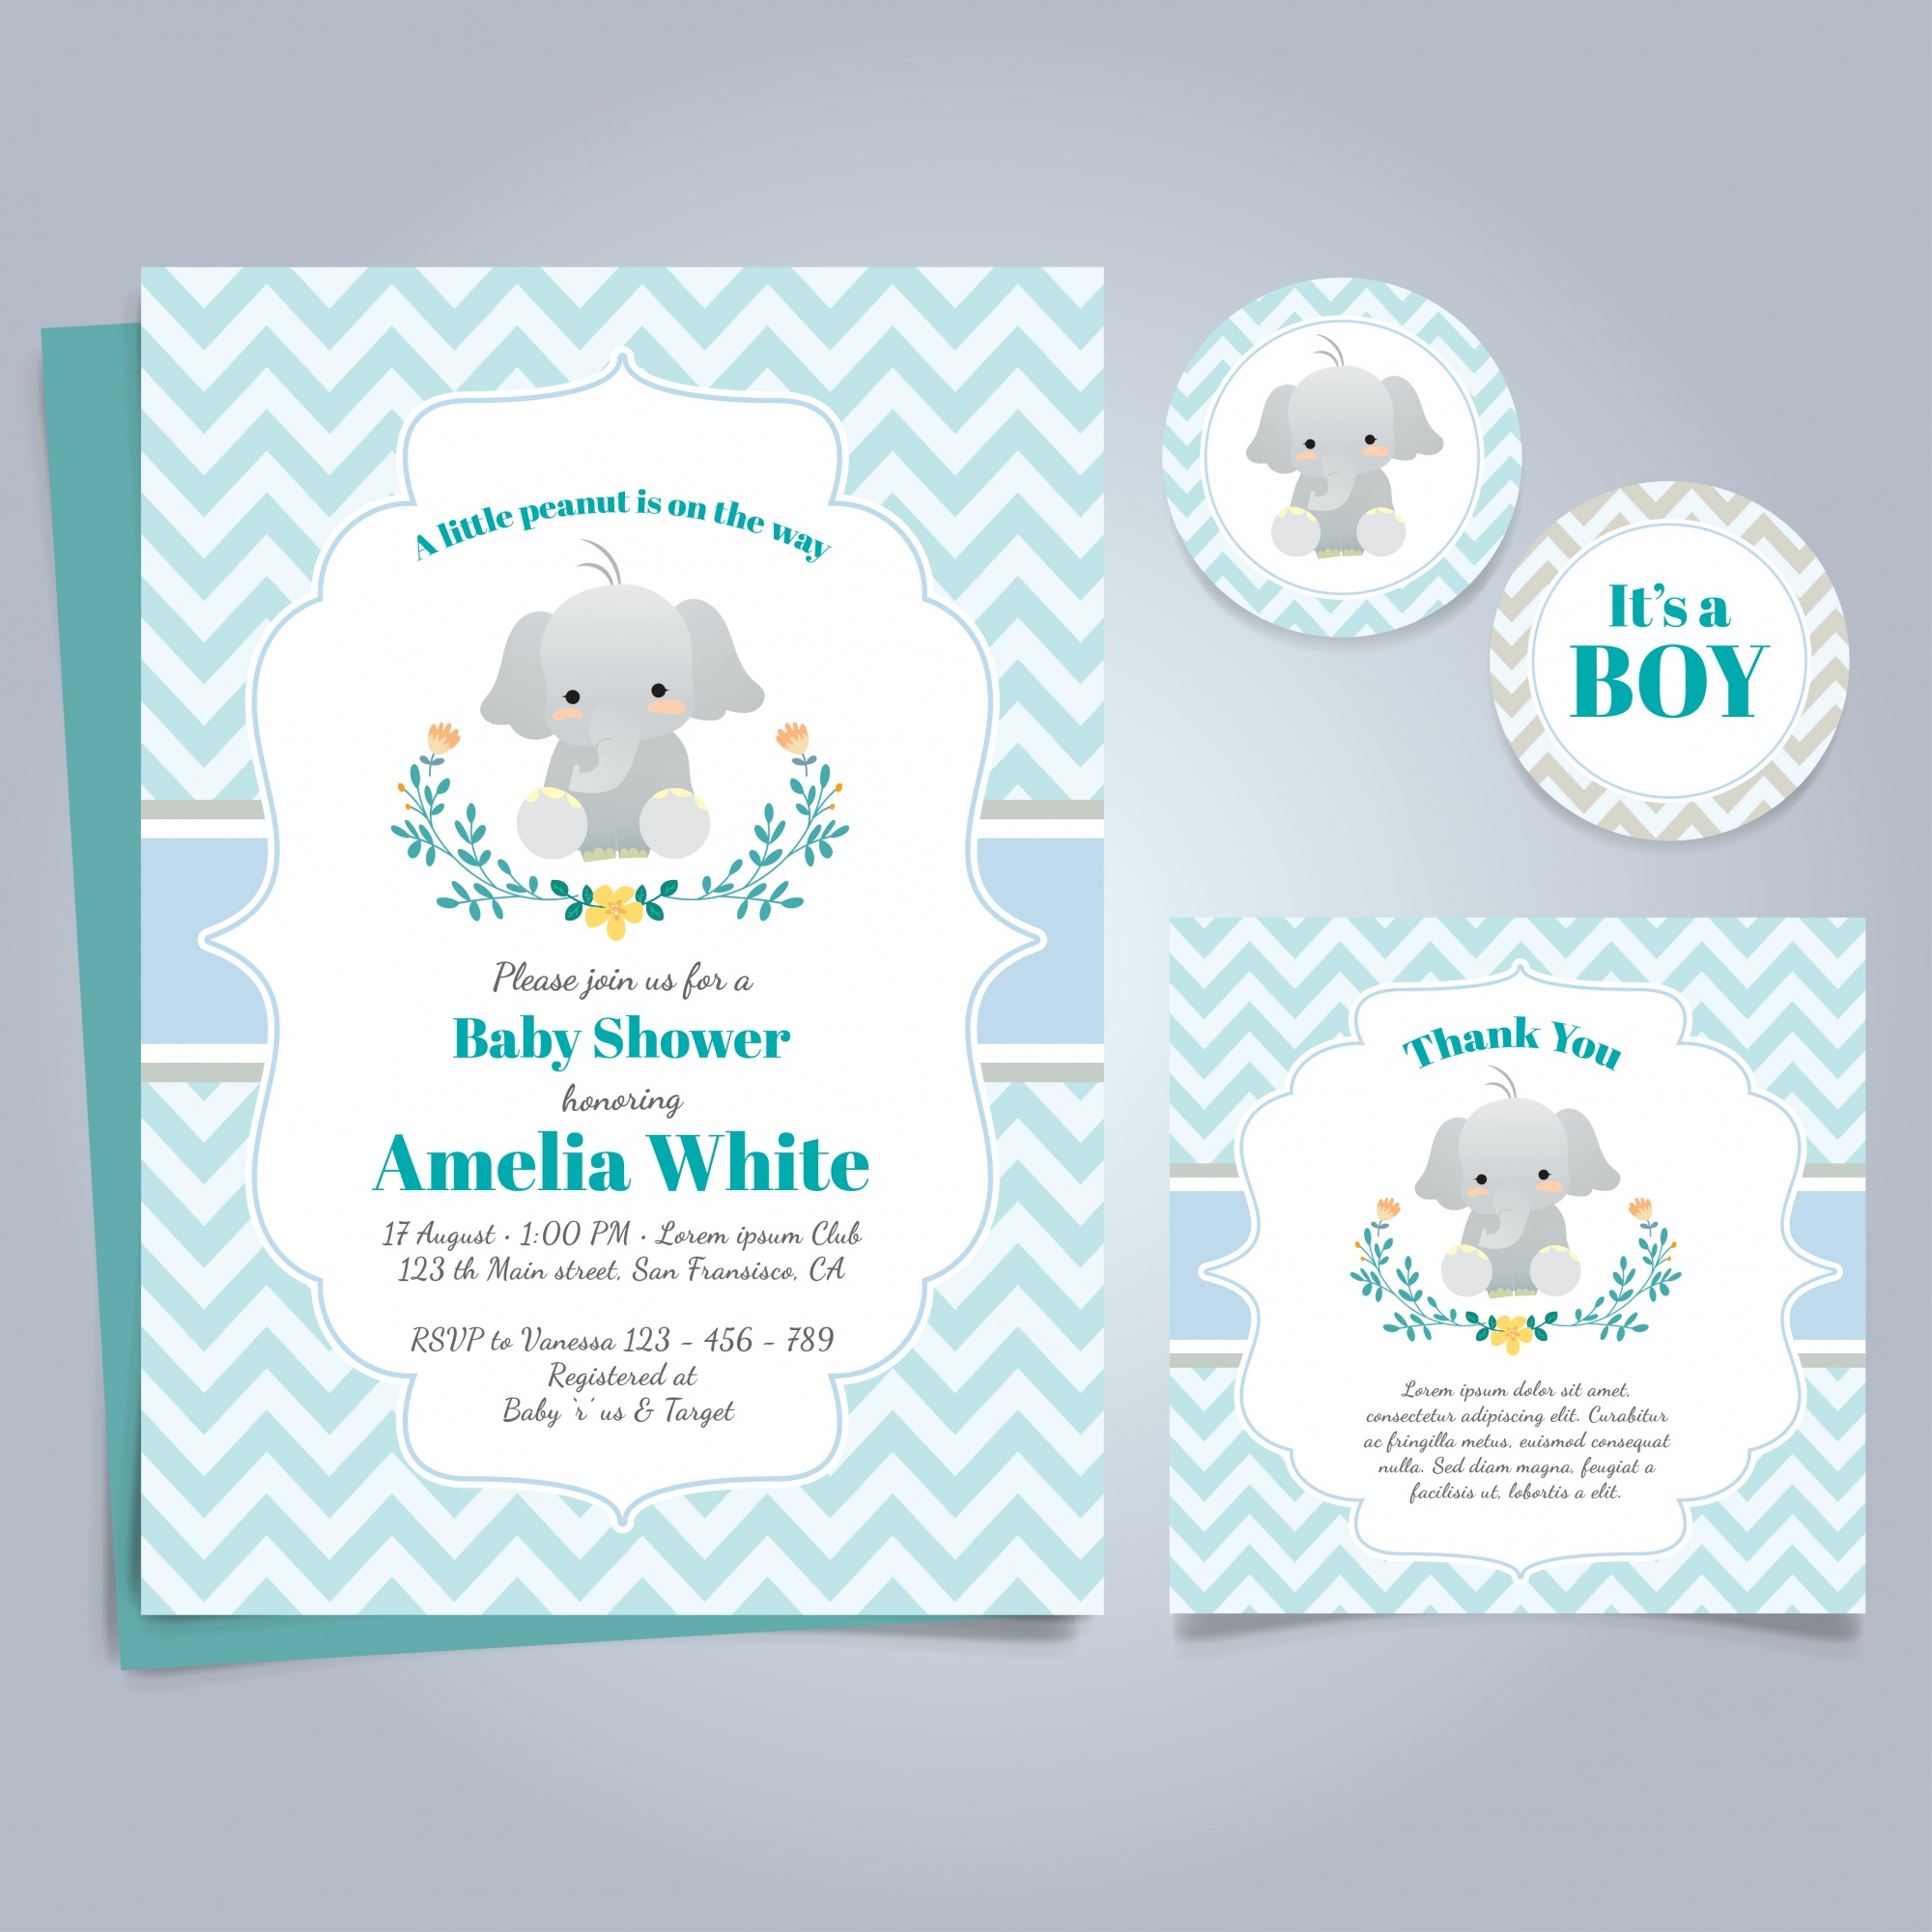 Blue card for baby shower with a cute elephant